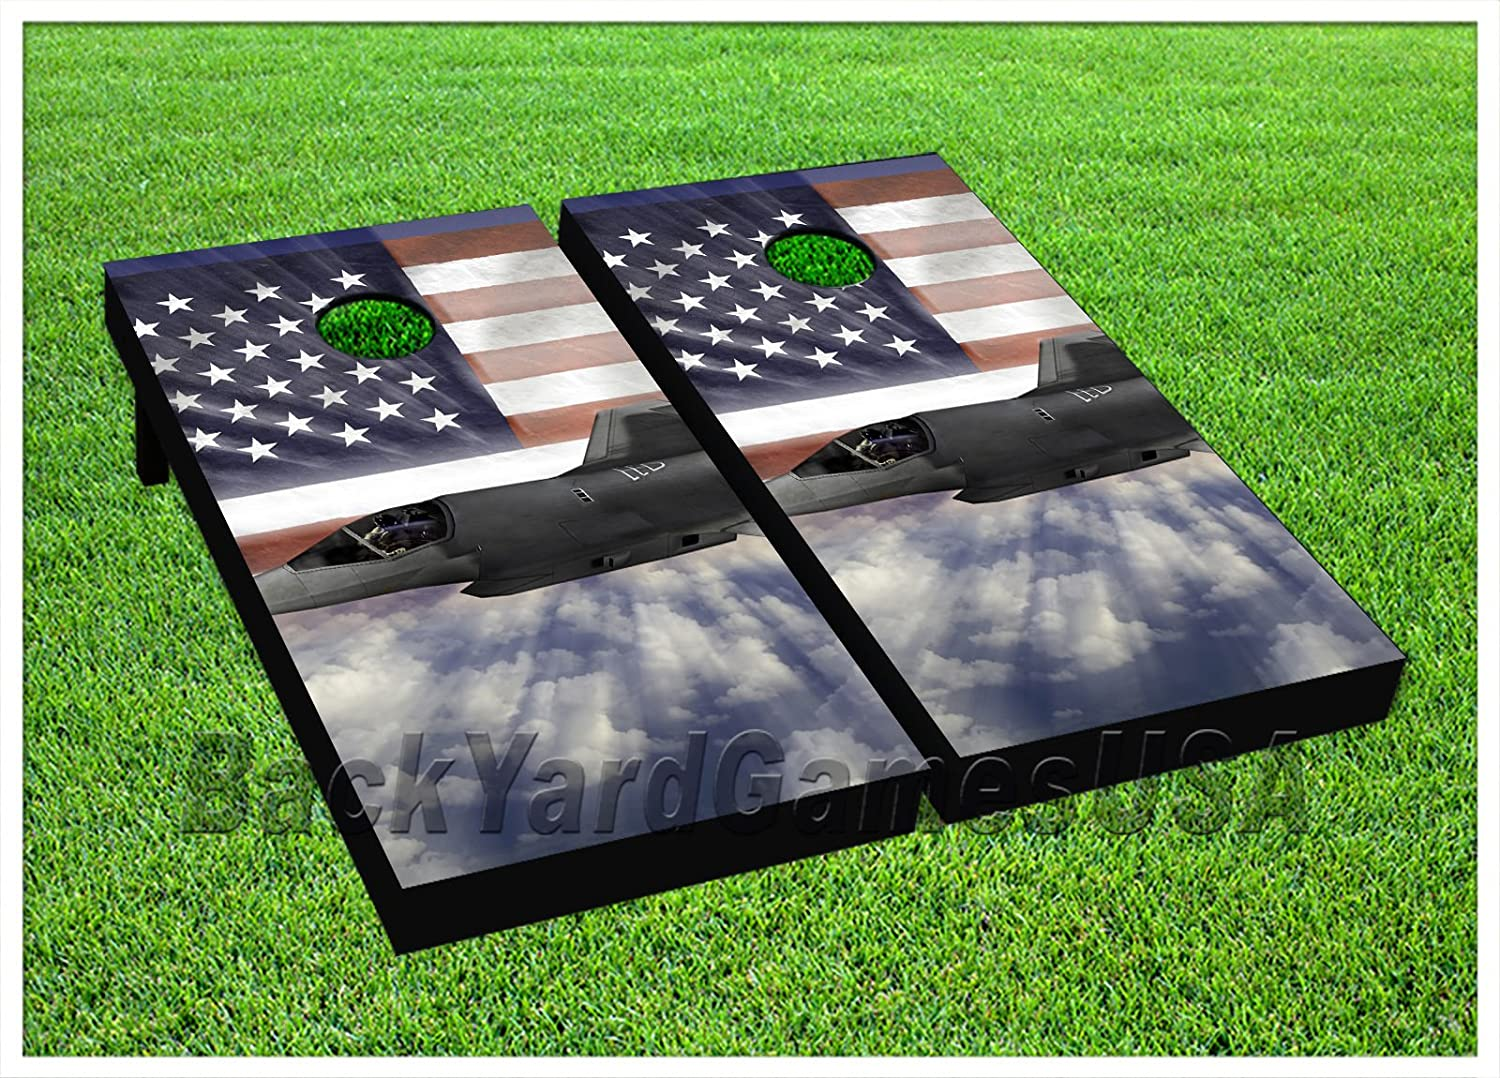 USA Airforce Cornhole Beanbag Toss Game WバッグゲームボードUnited Statesセット583   B071J3N4YX